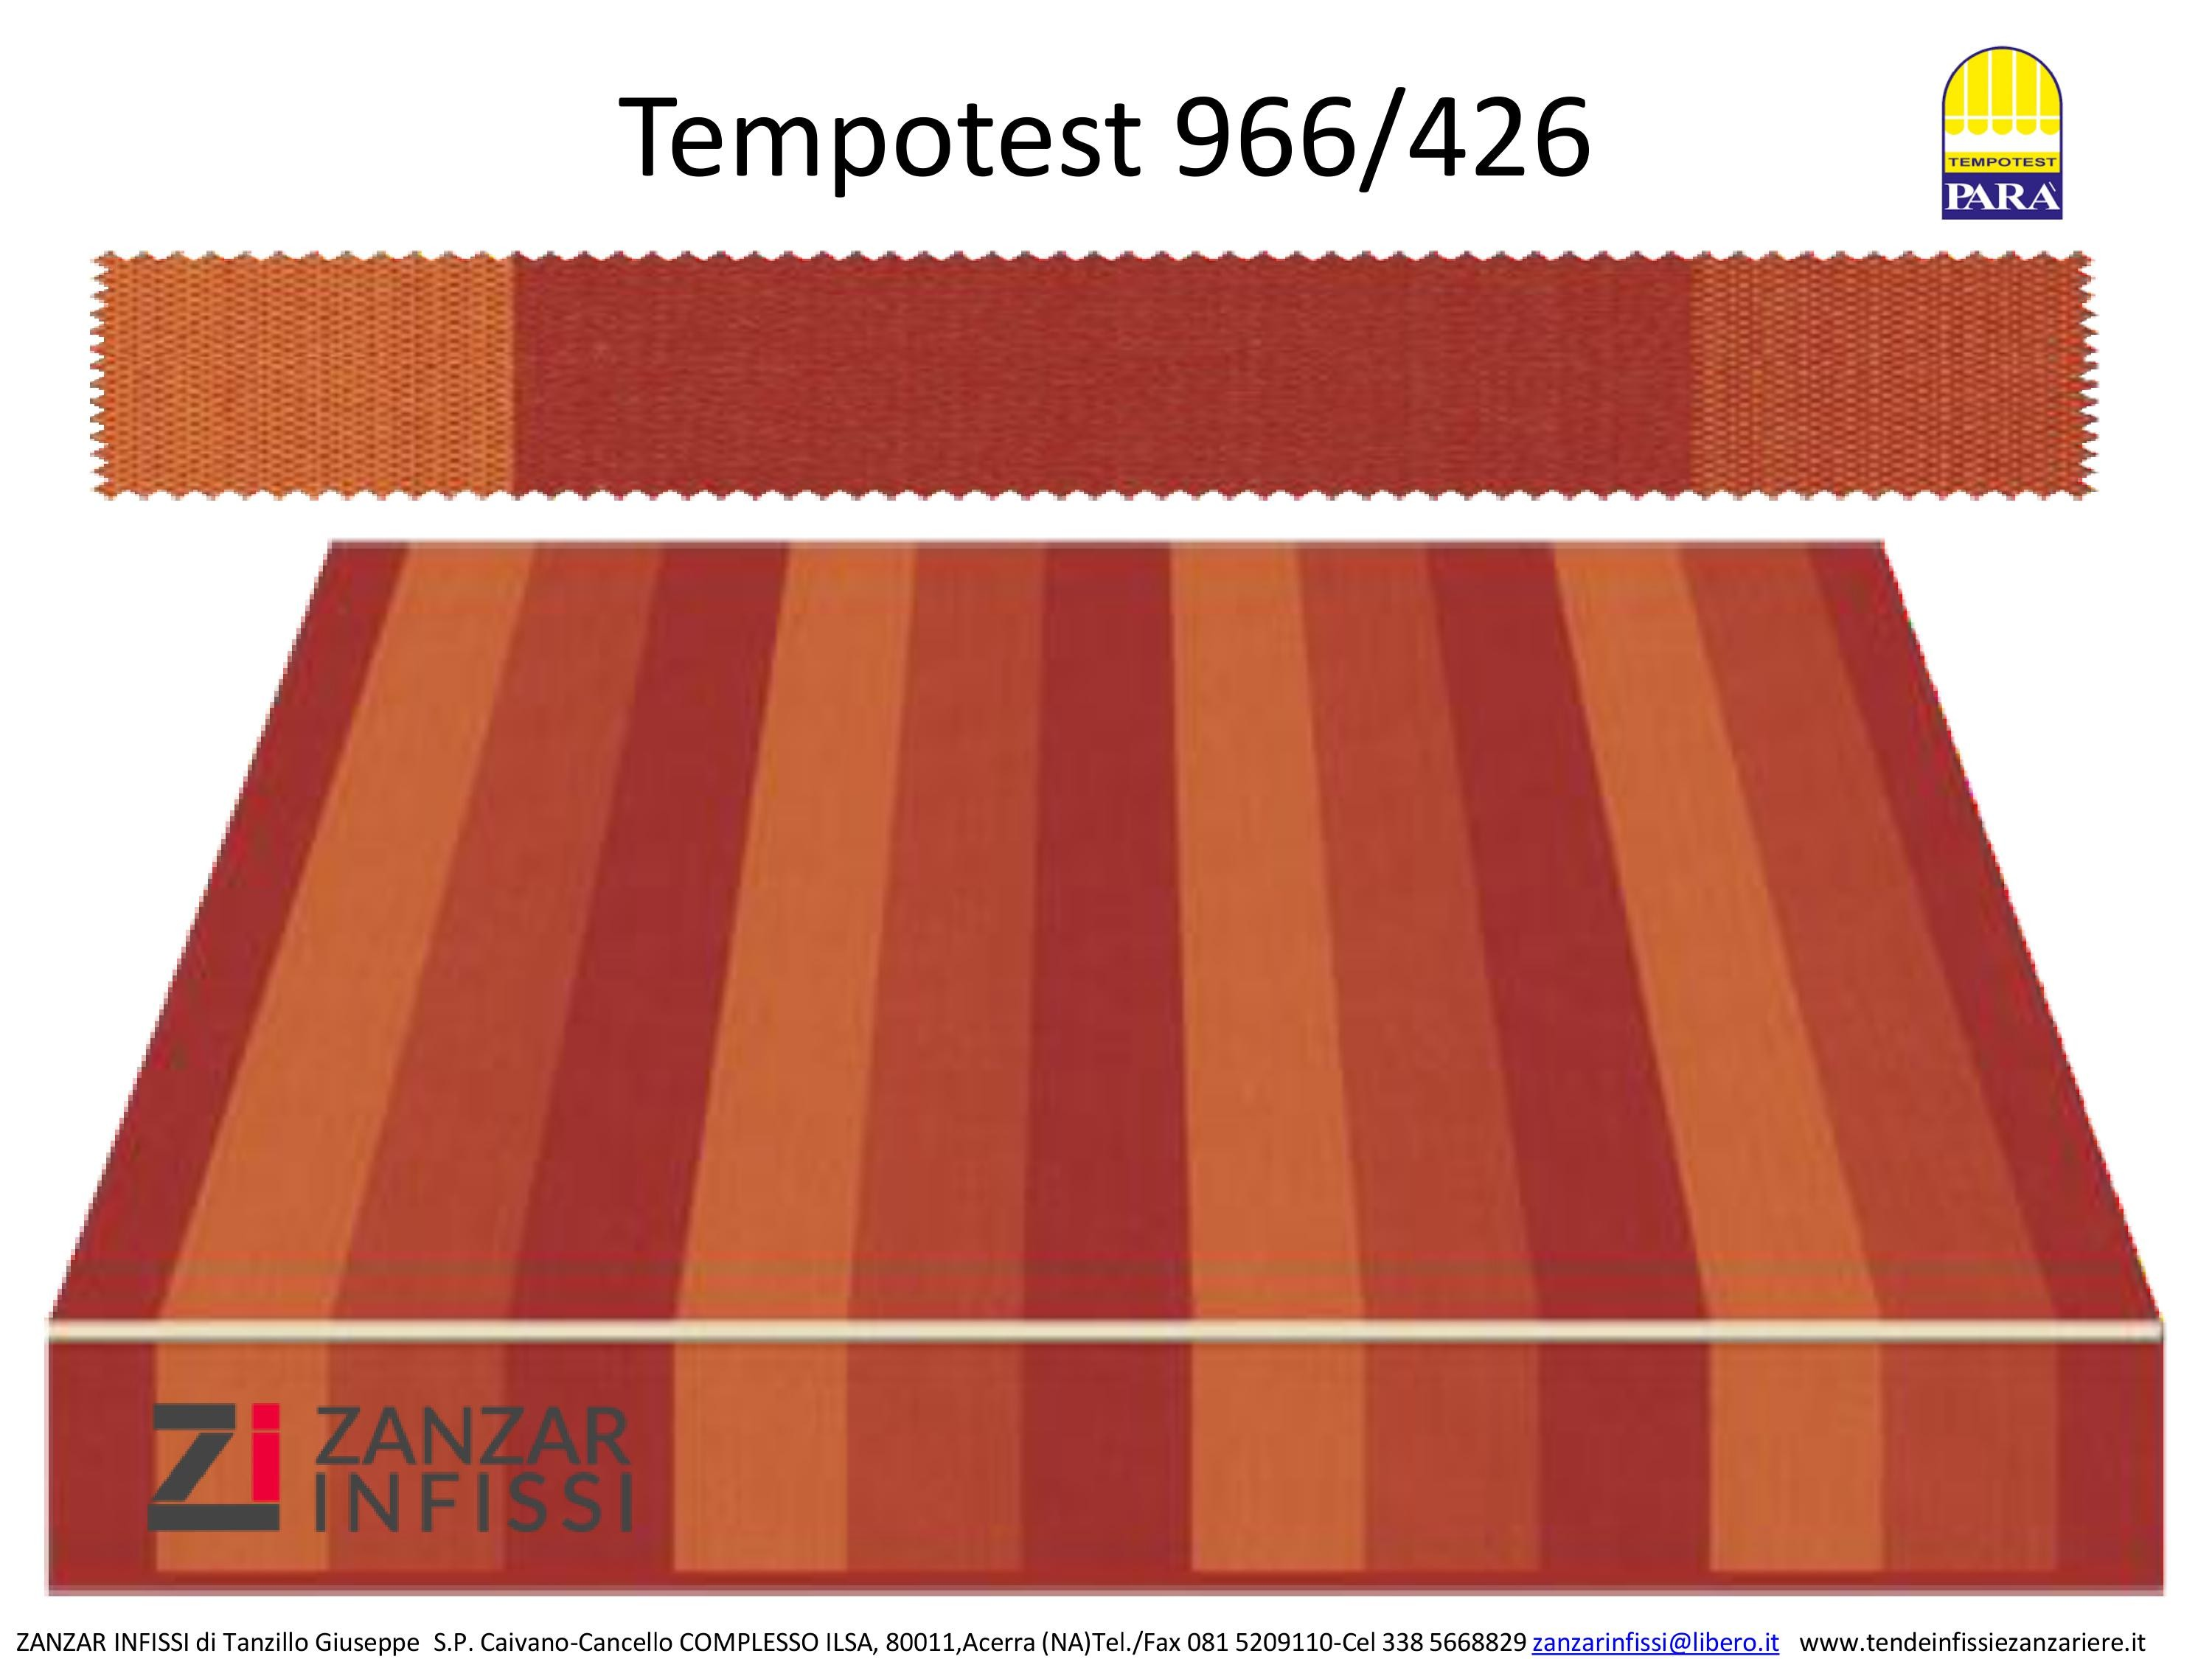 Tempotest 966/426